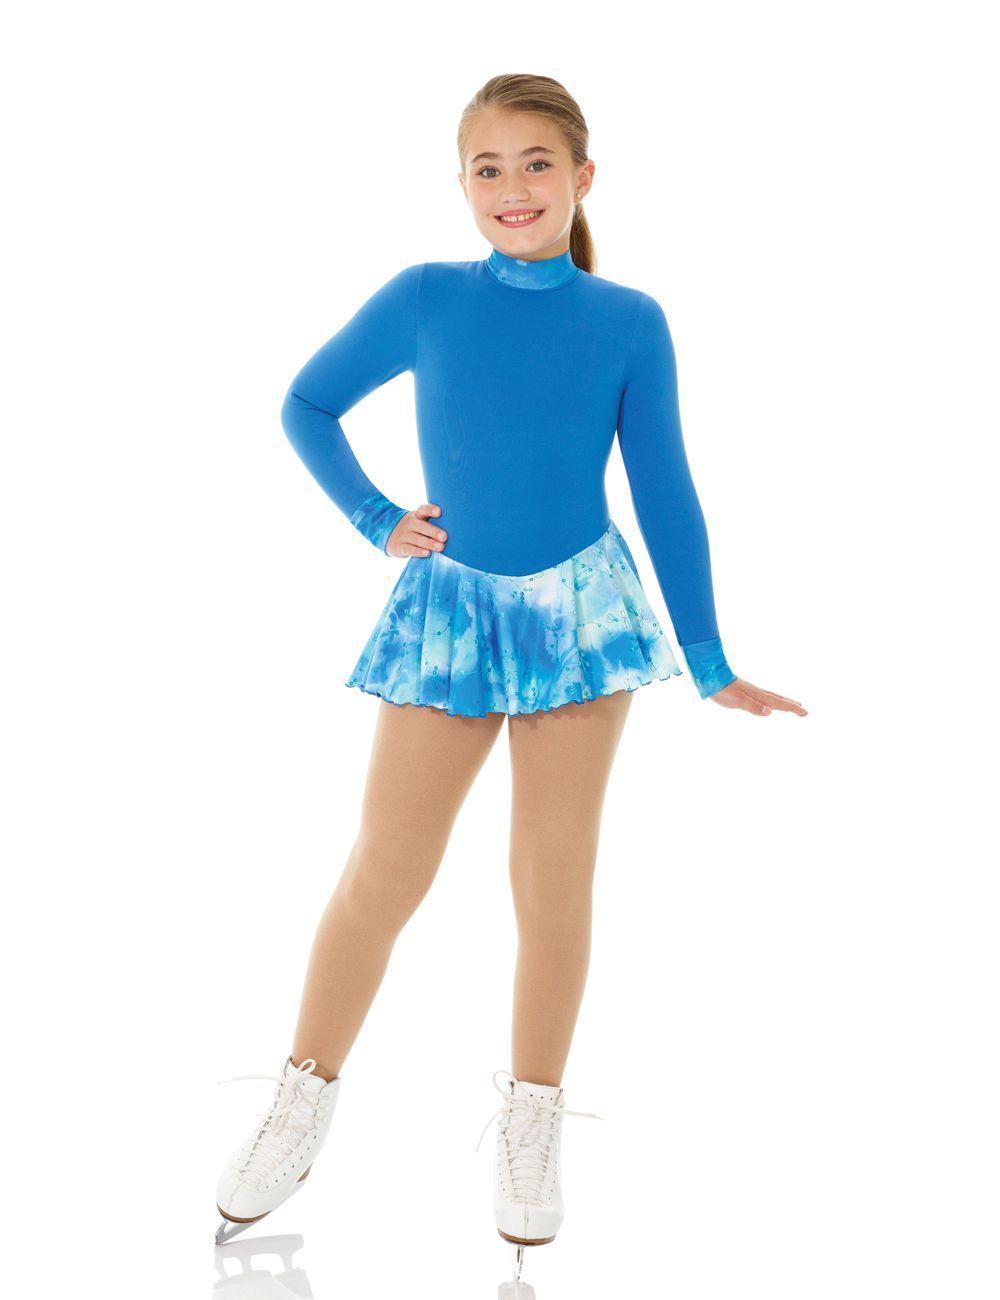 Primary image for Mondor Model 4423 Polartec Skating Dress 2017- Blue Tie Dye Size 4-6